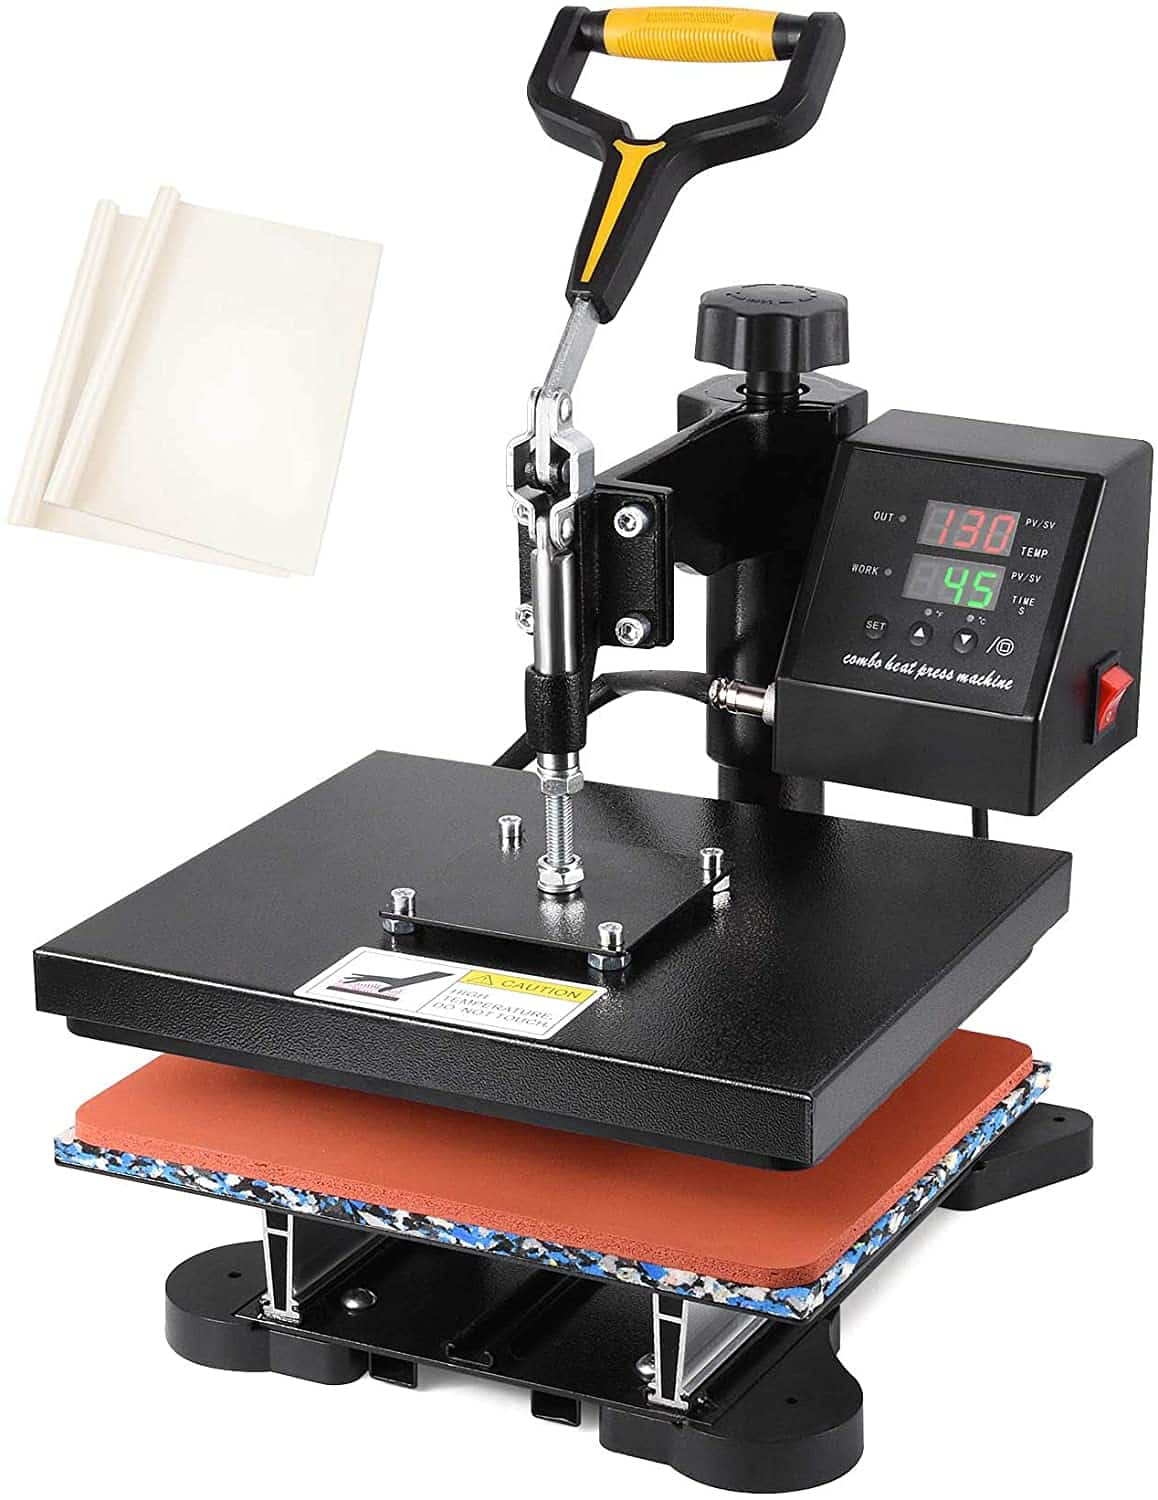 Seeutek Heat Press